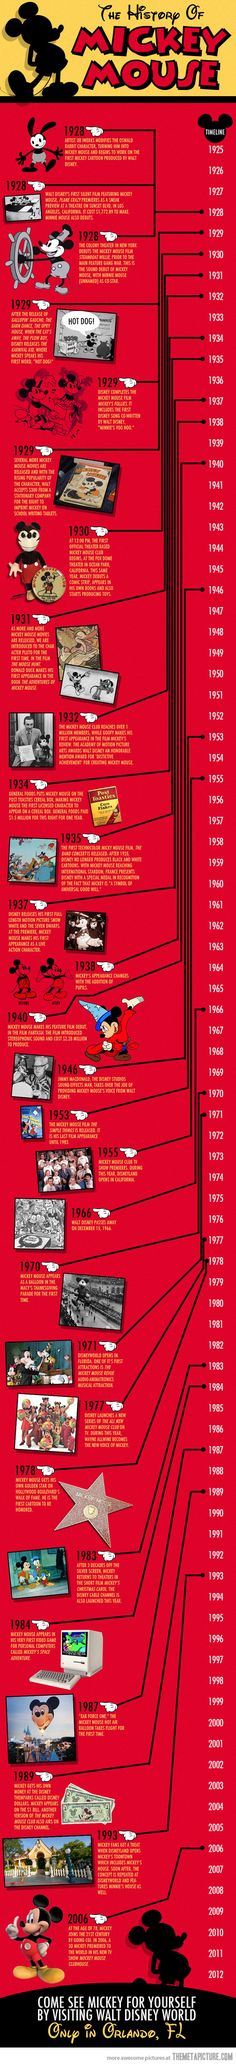 The History of Mickey Mouse…